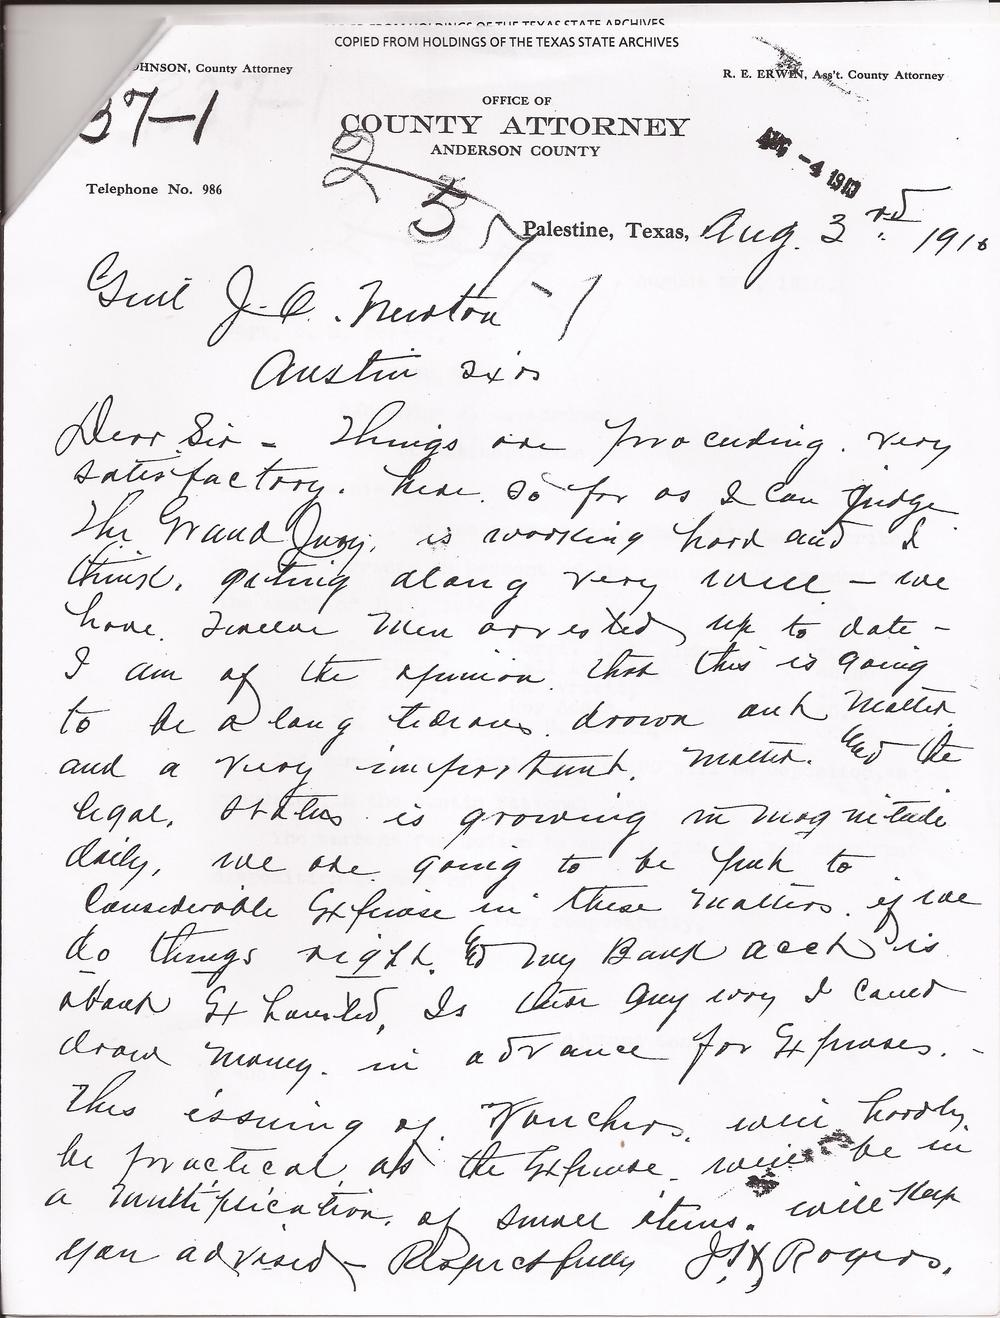 J.H. Rodgers Letter, August 3, 1910 (Company C, Ranger Force, Capt. J.H. Rogers, 1910, Ranger Force Military Rolls, Texas Adjutant General's Department.  Archives and Information Services Division, Texas State Library and Archives Commission)